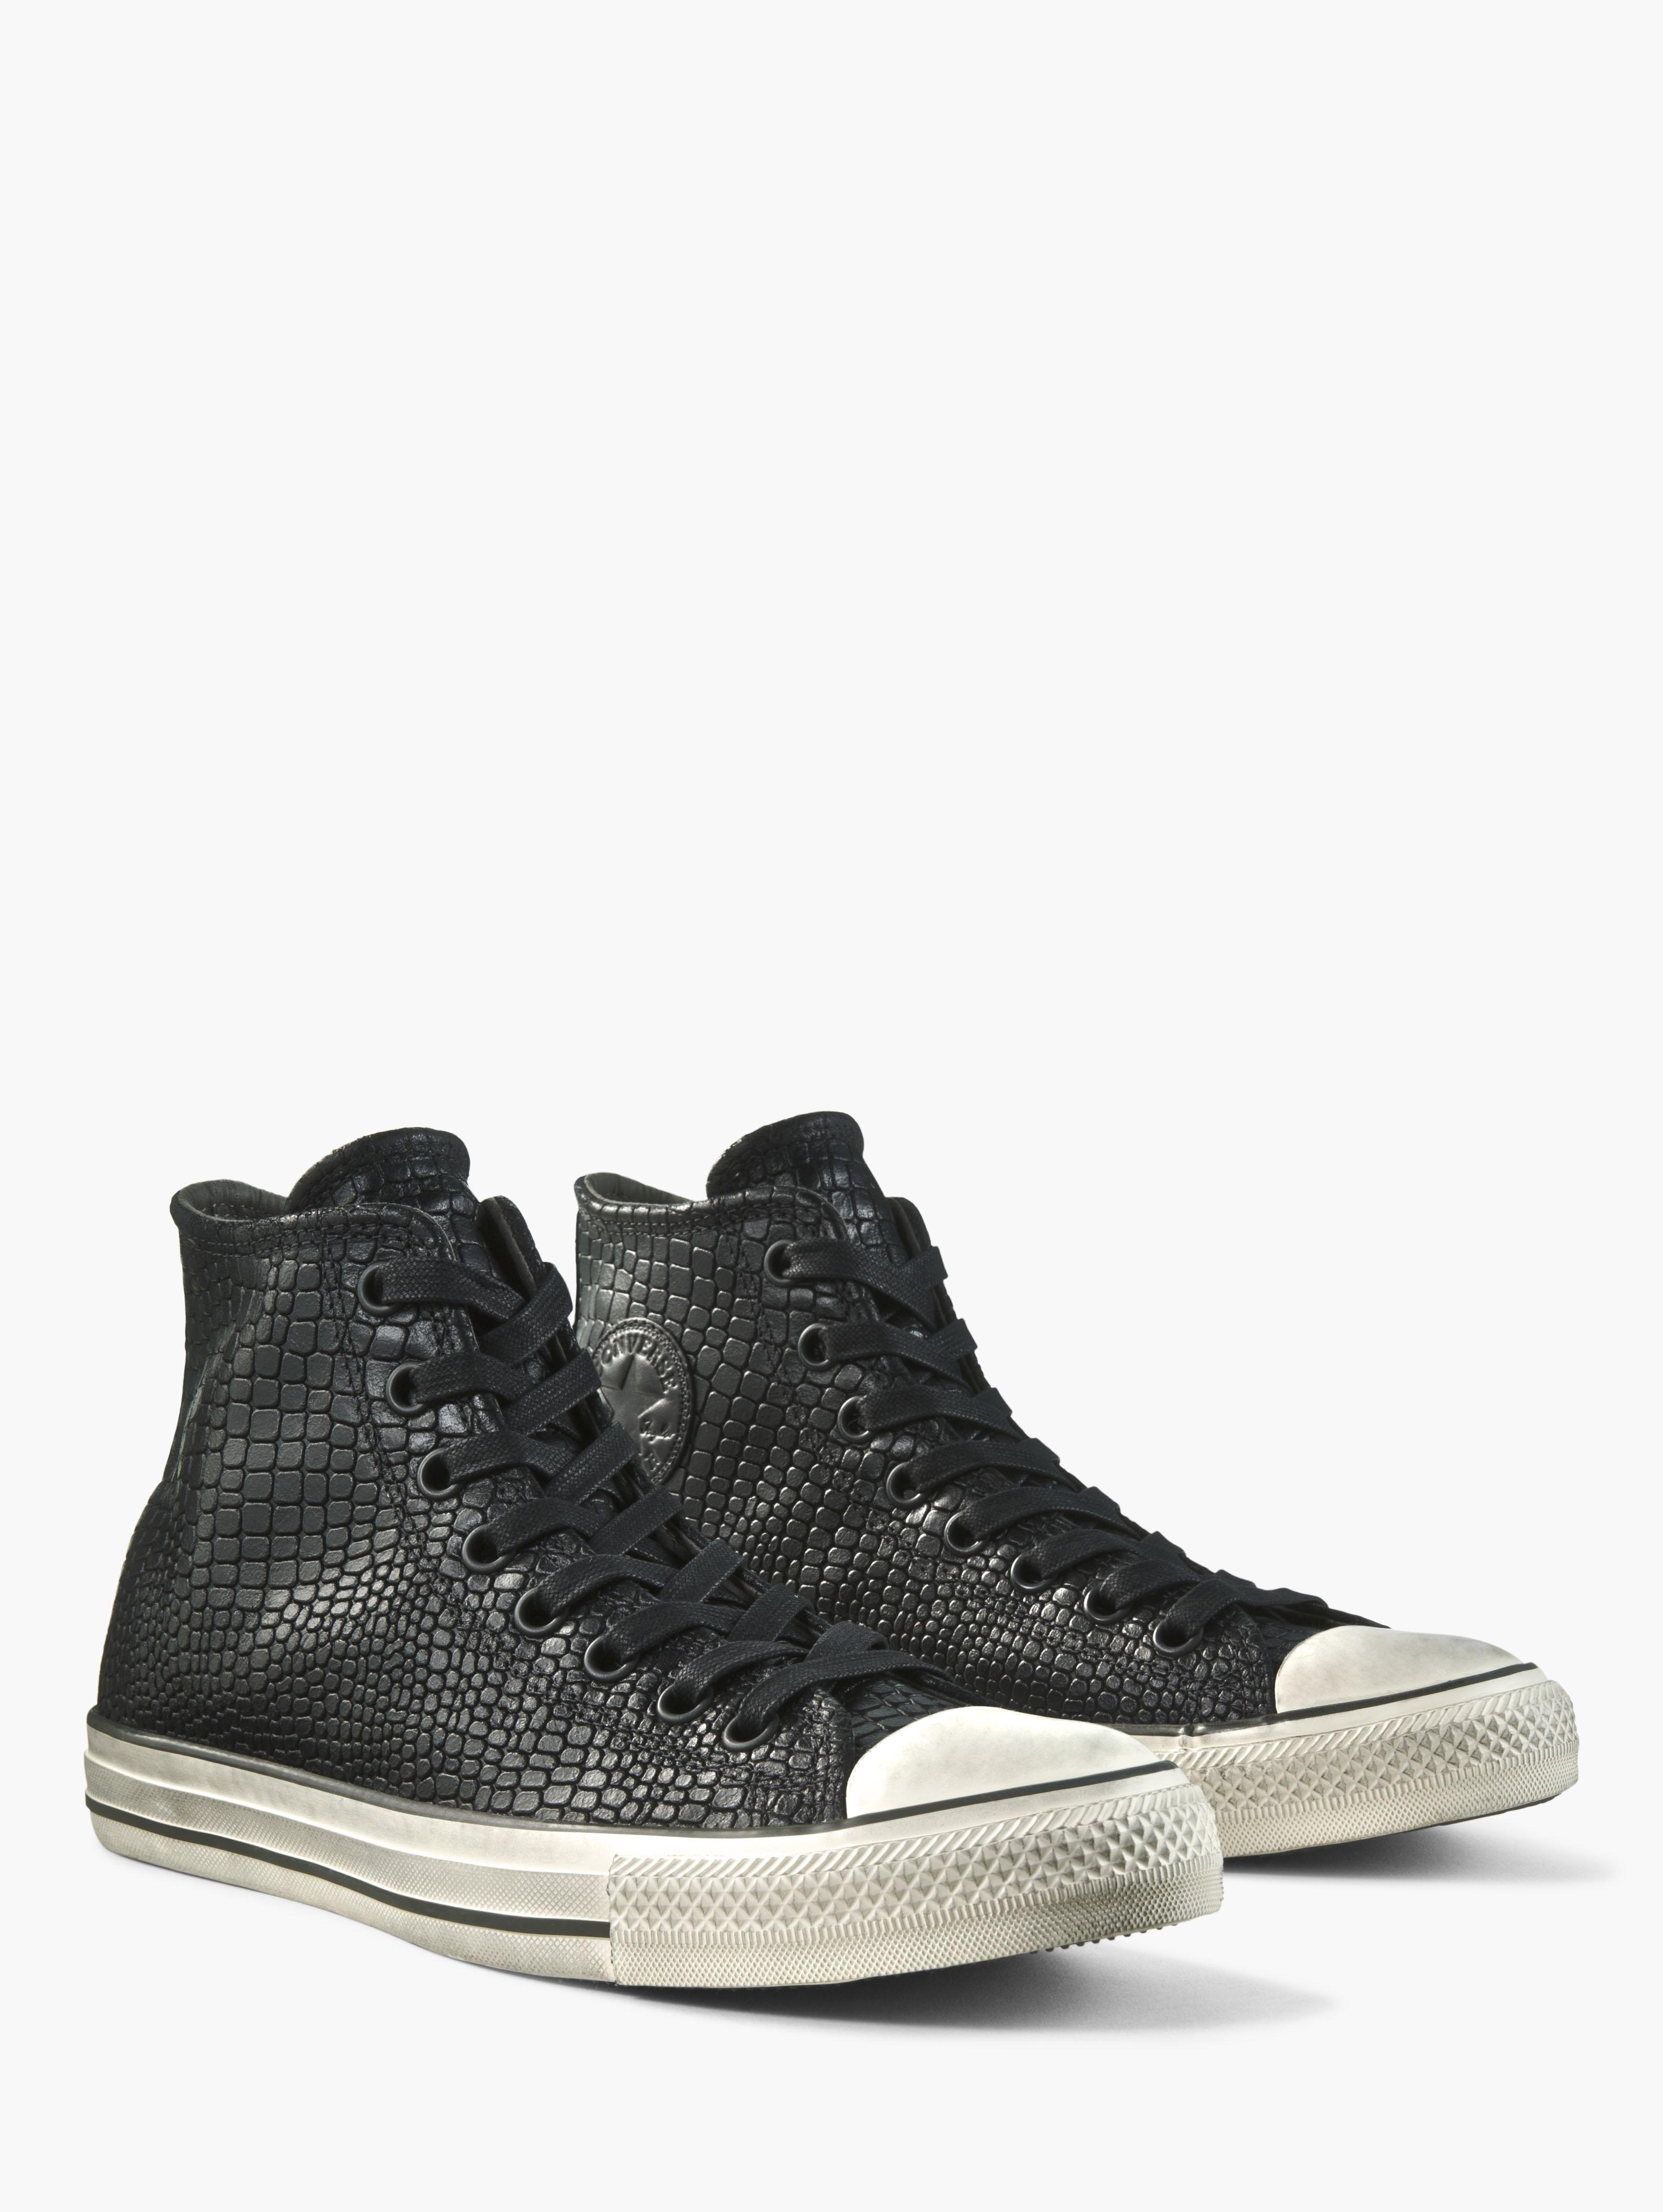 Reptile Embossed Chuck Taylor High Top